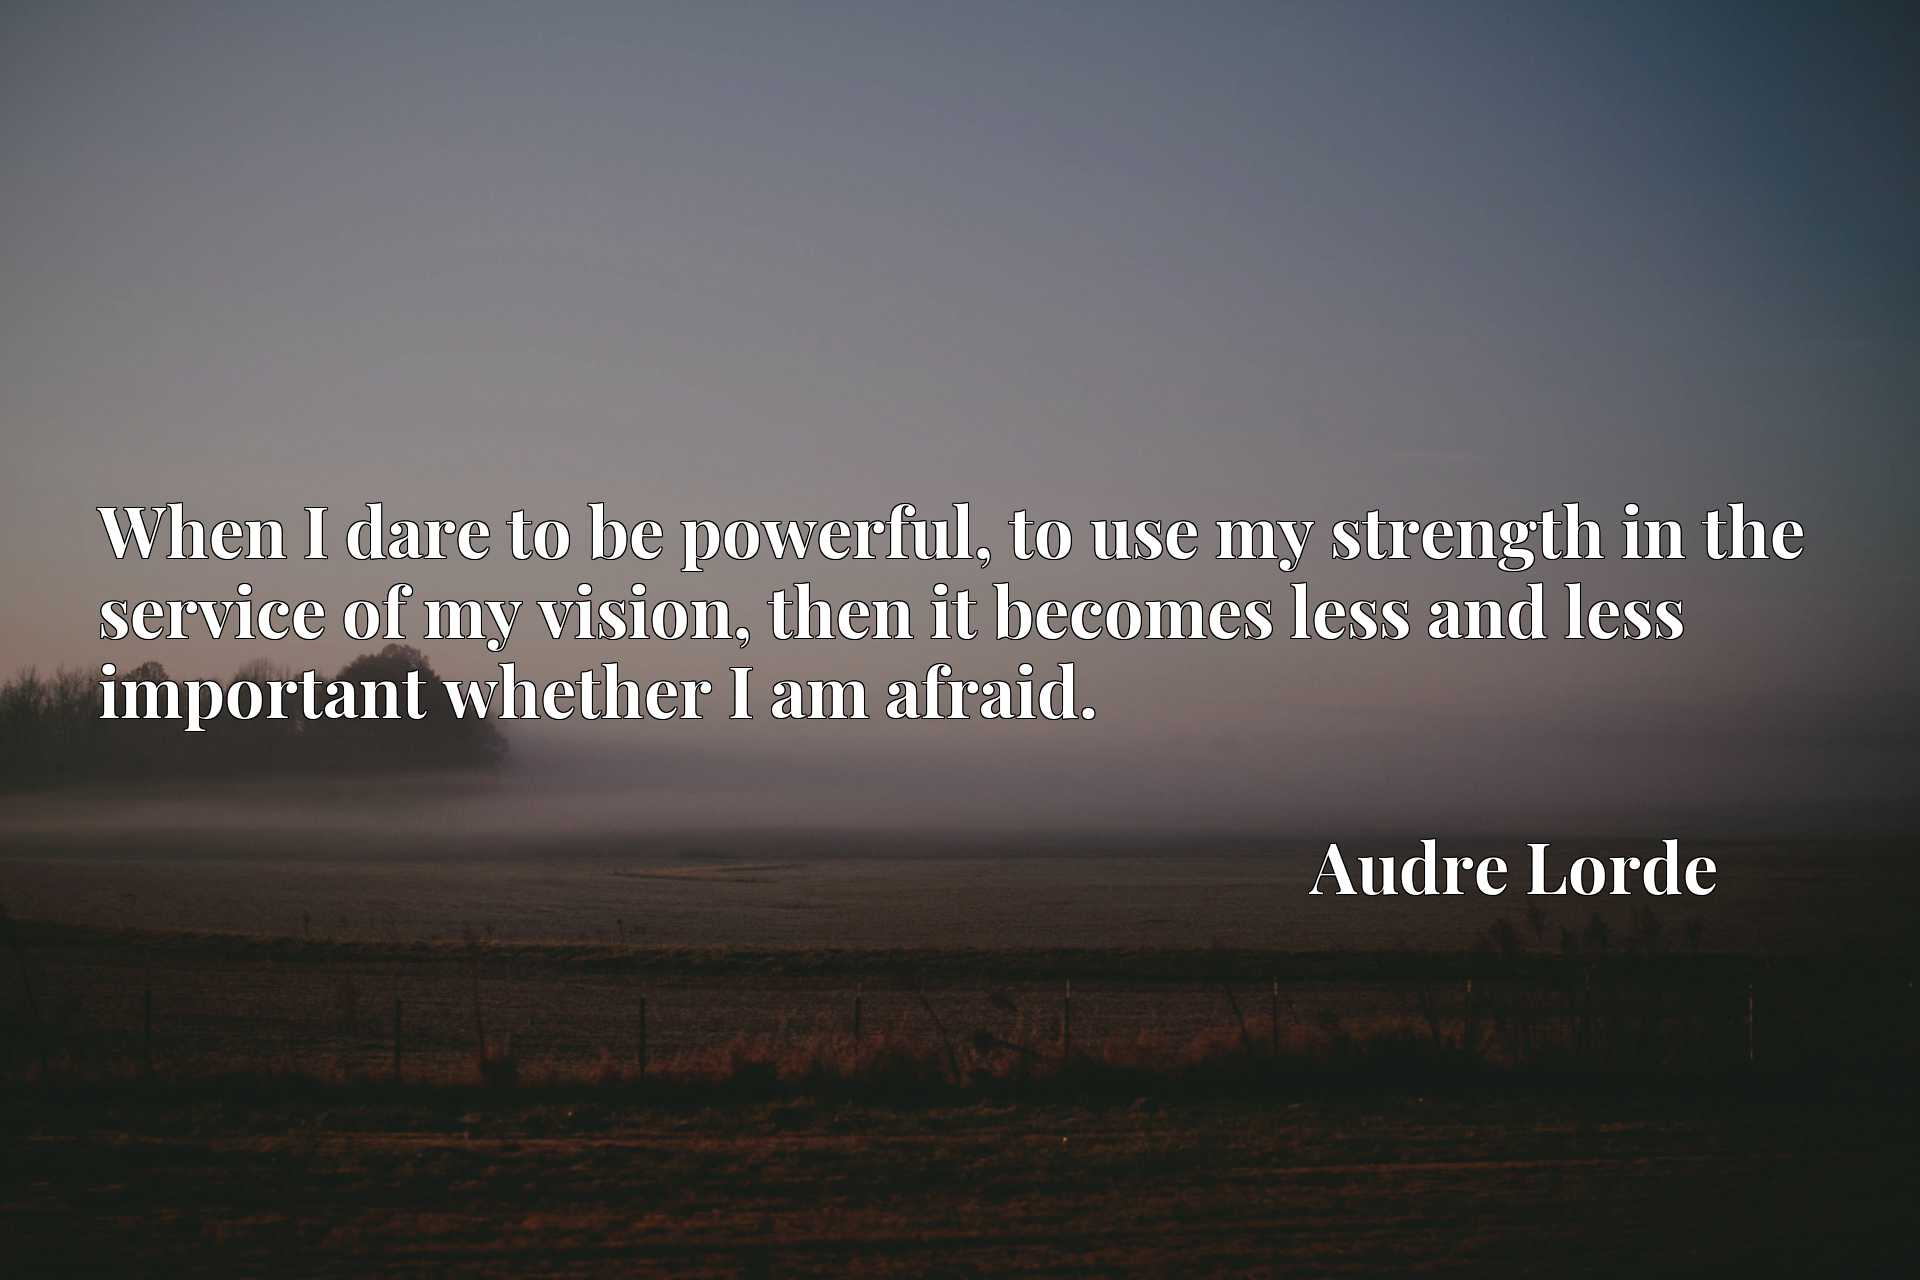 When I dare to be powerful, to use my strength in the service of my vision, then it becomes less and less important whether I am afraid.